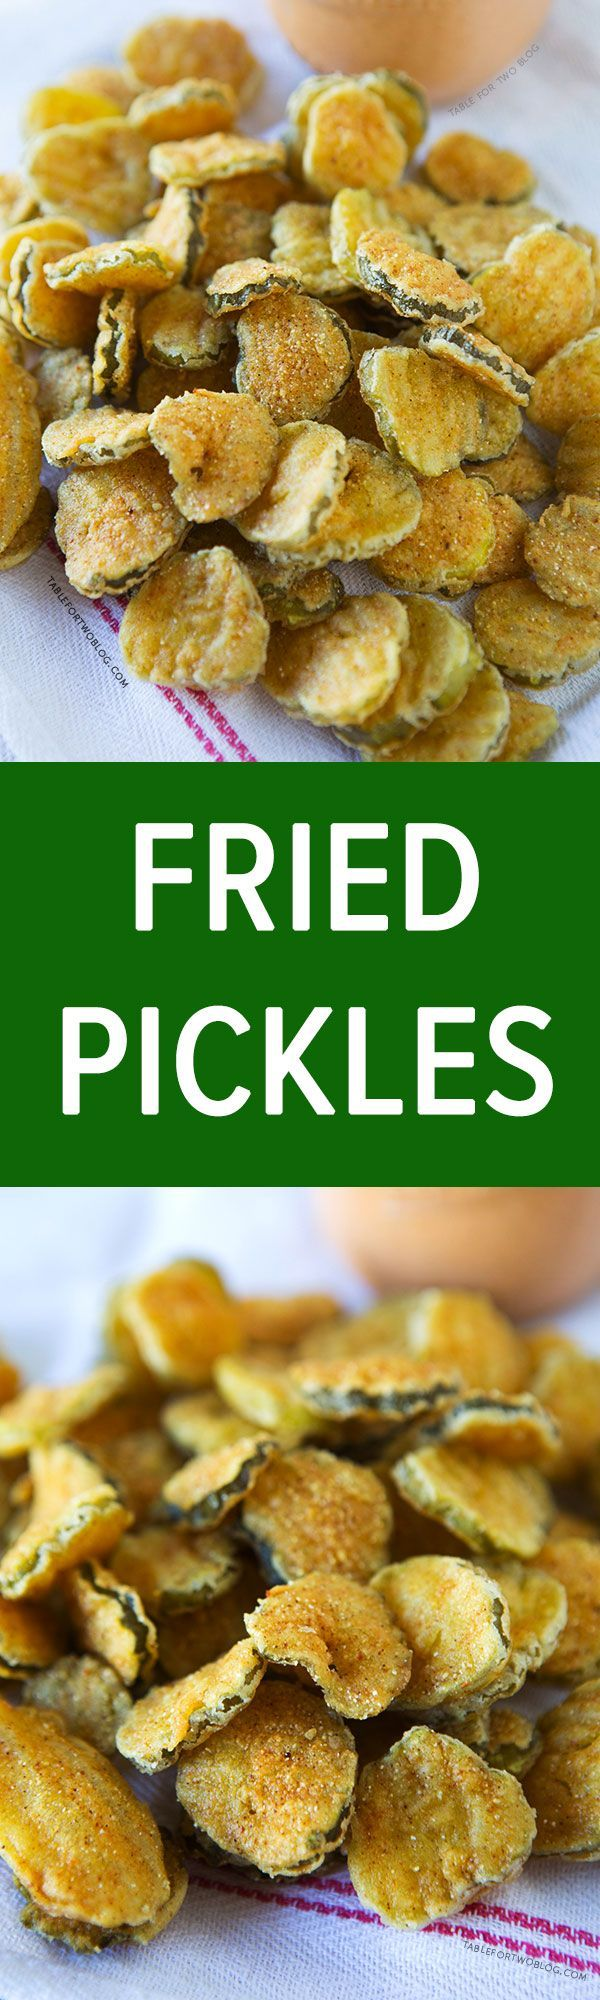 Check out Fried Pickles. It's so easy to make! Fried